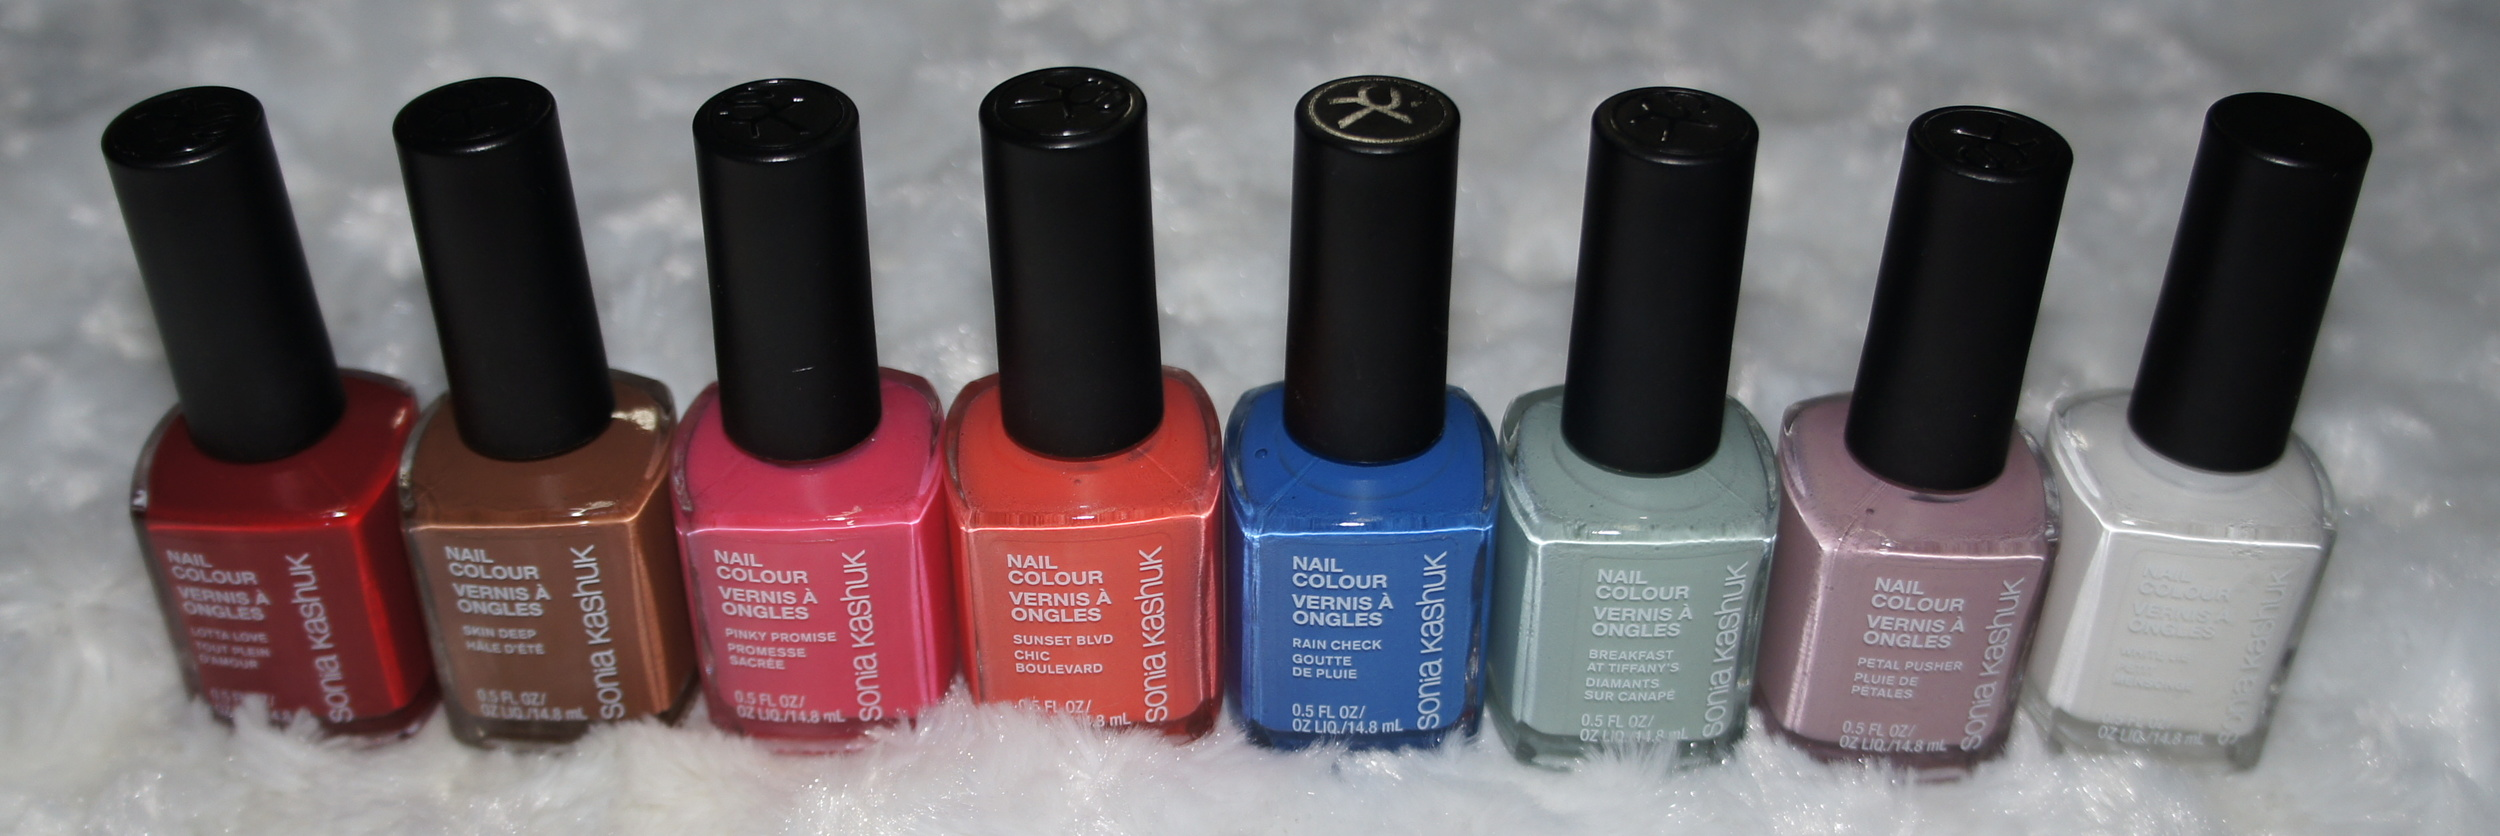 Sonia Kashuk Spring 2014 Collection - Nail Colors for Spring (Lotta Love, Skin Deep, Pinky Promise,Sunset Blvd.,Rain Check,Breakfast at Tiffany's, Petal Pusher, White Lie)